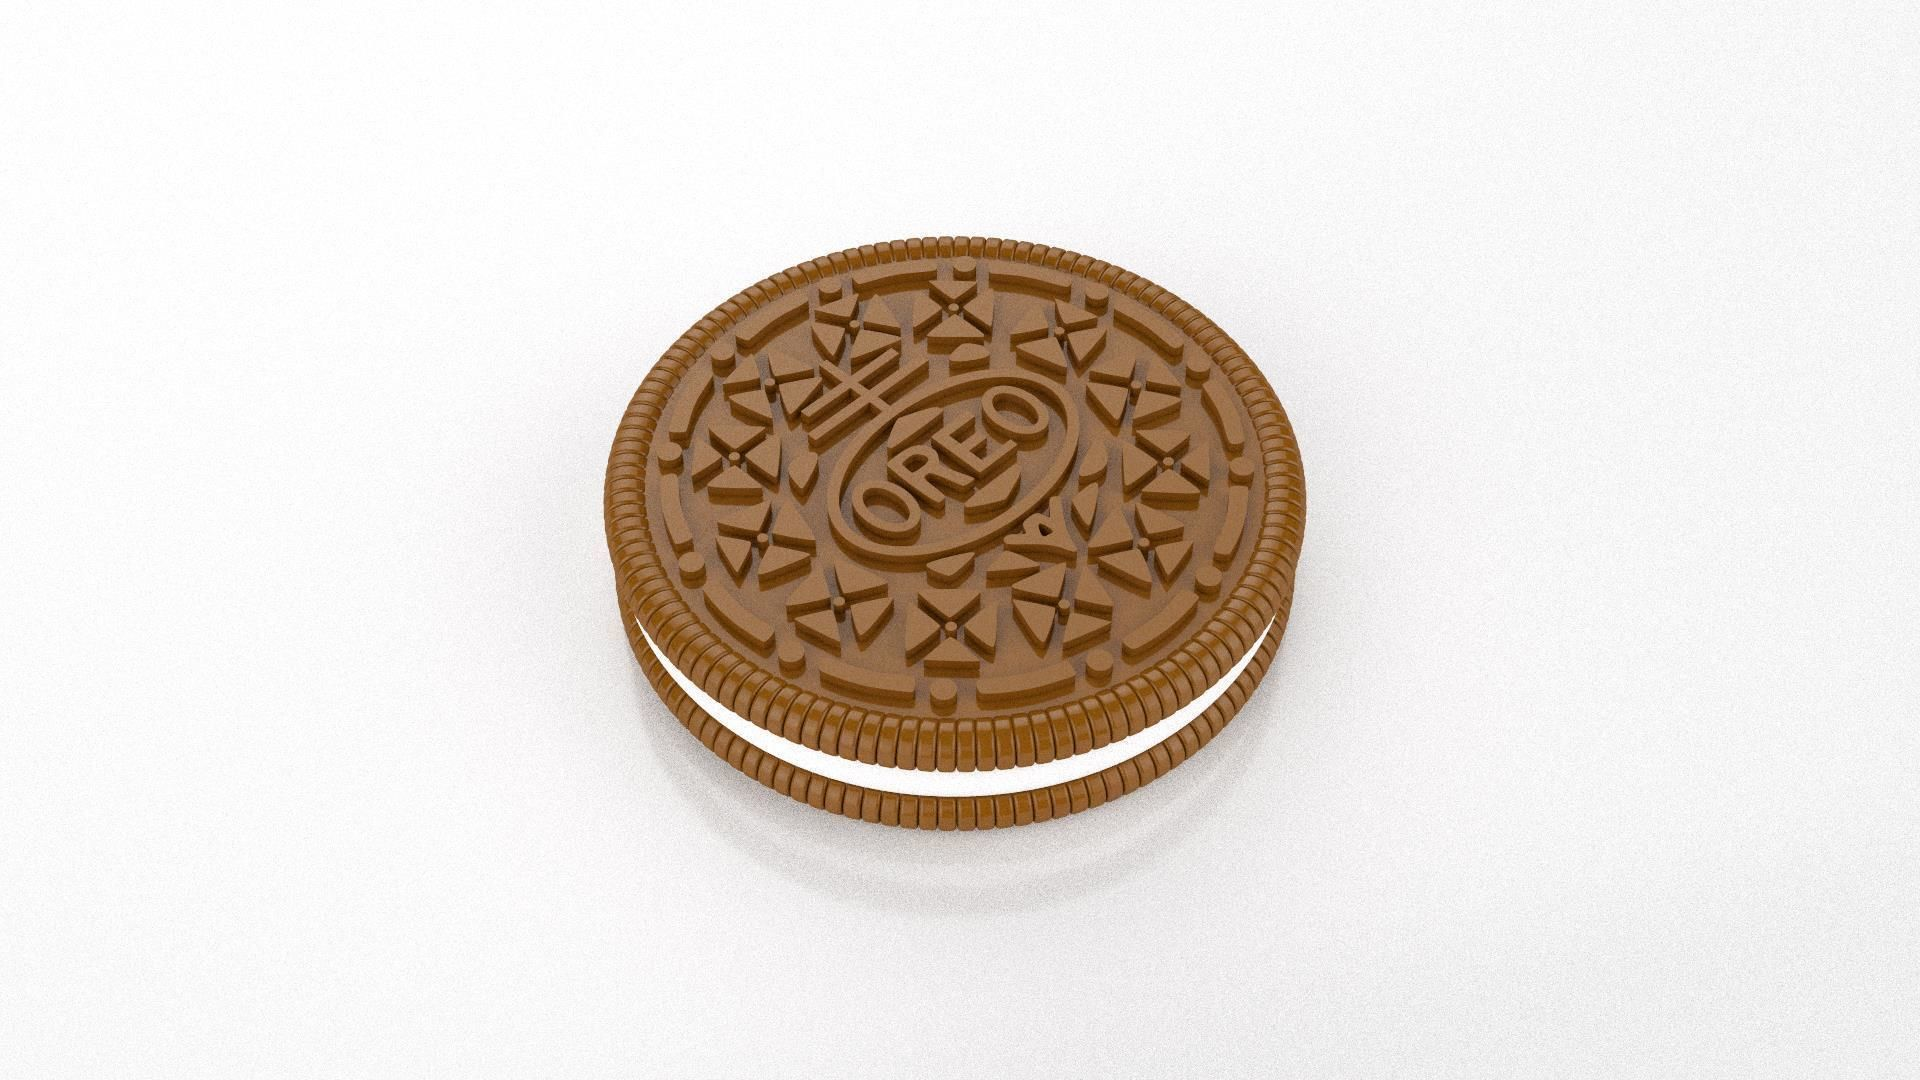 Oreo biscuit sculpture and pendant